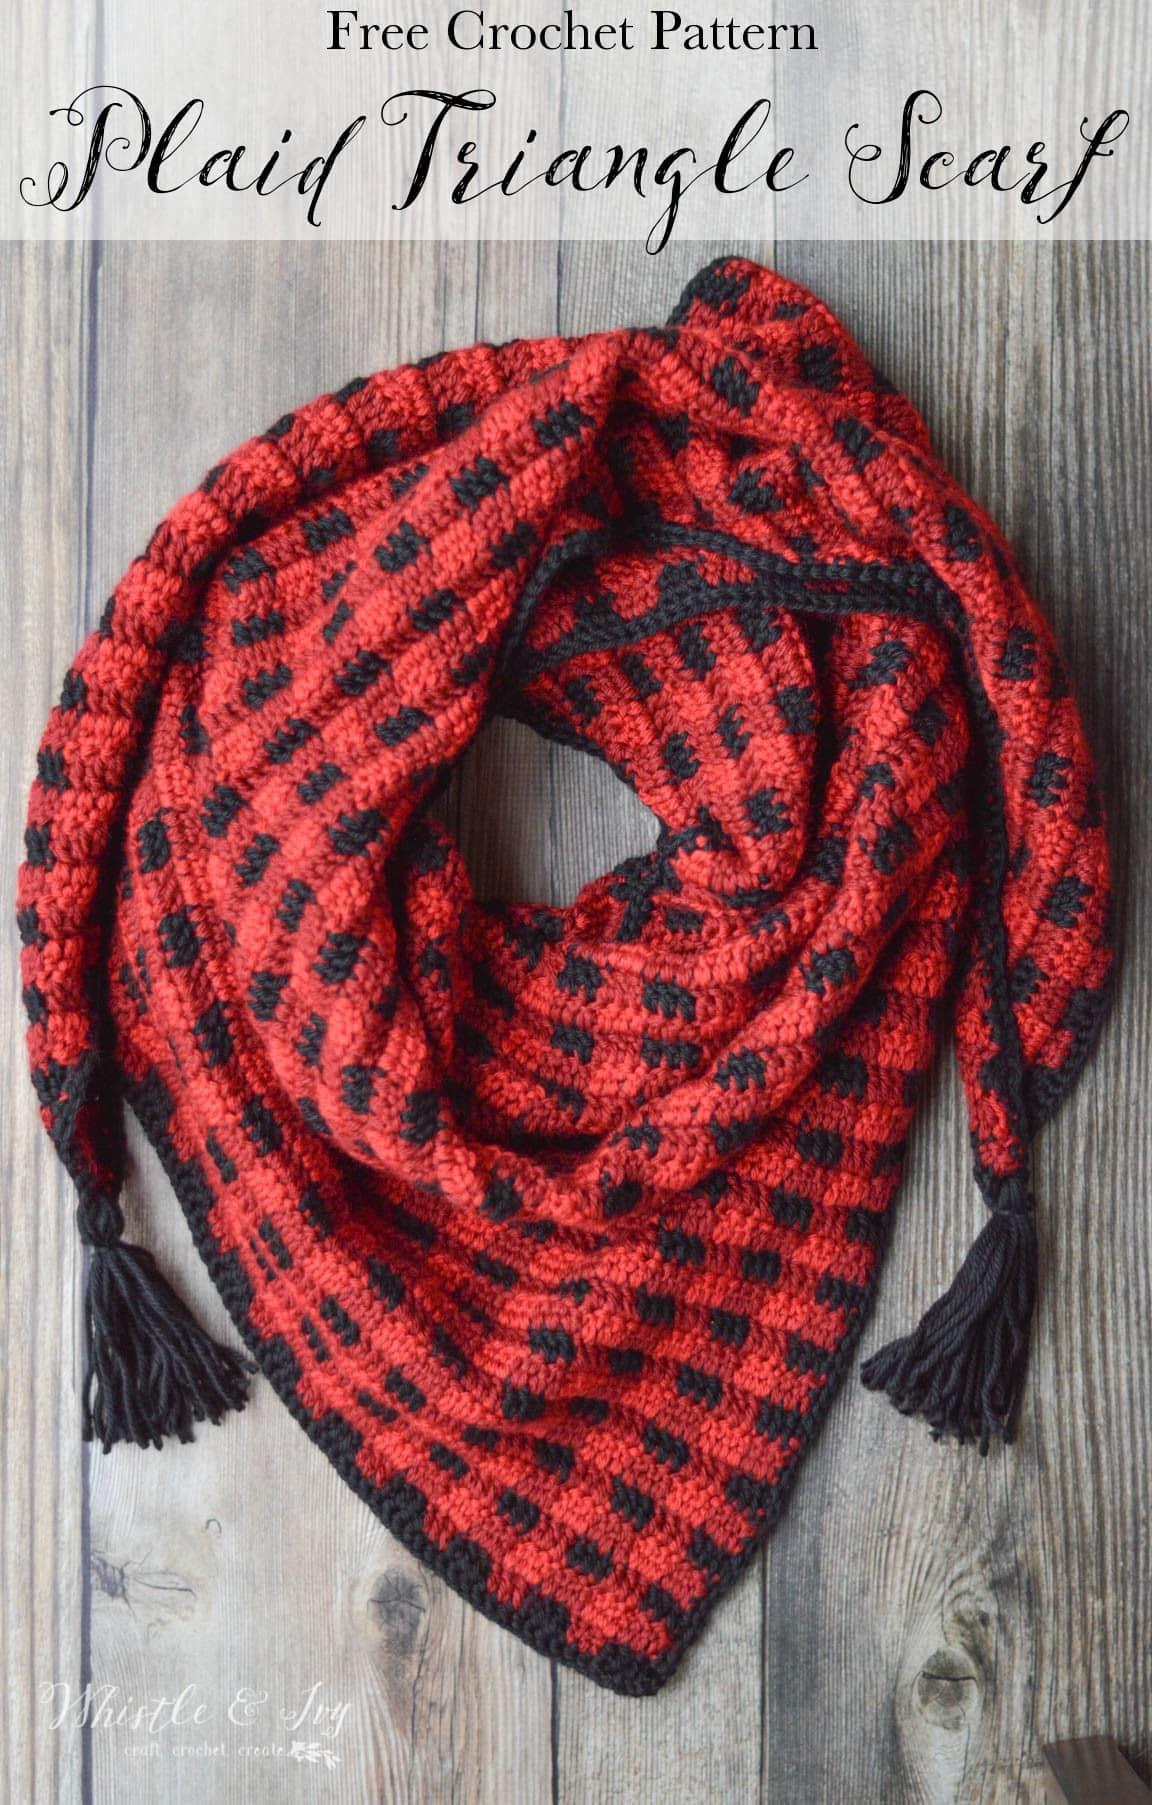 Crochet Plaid Triangle Scarf Whistle Ivy